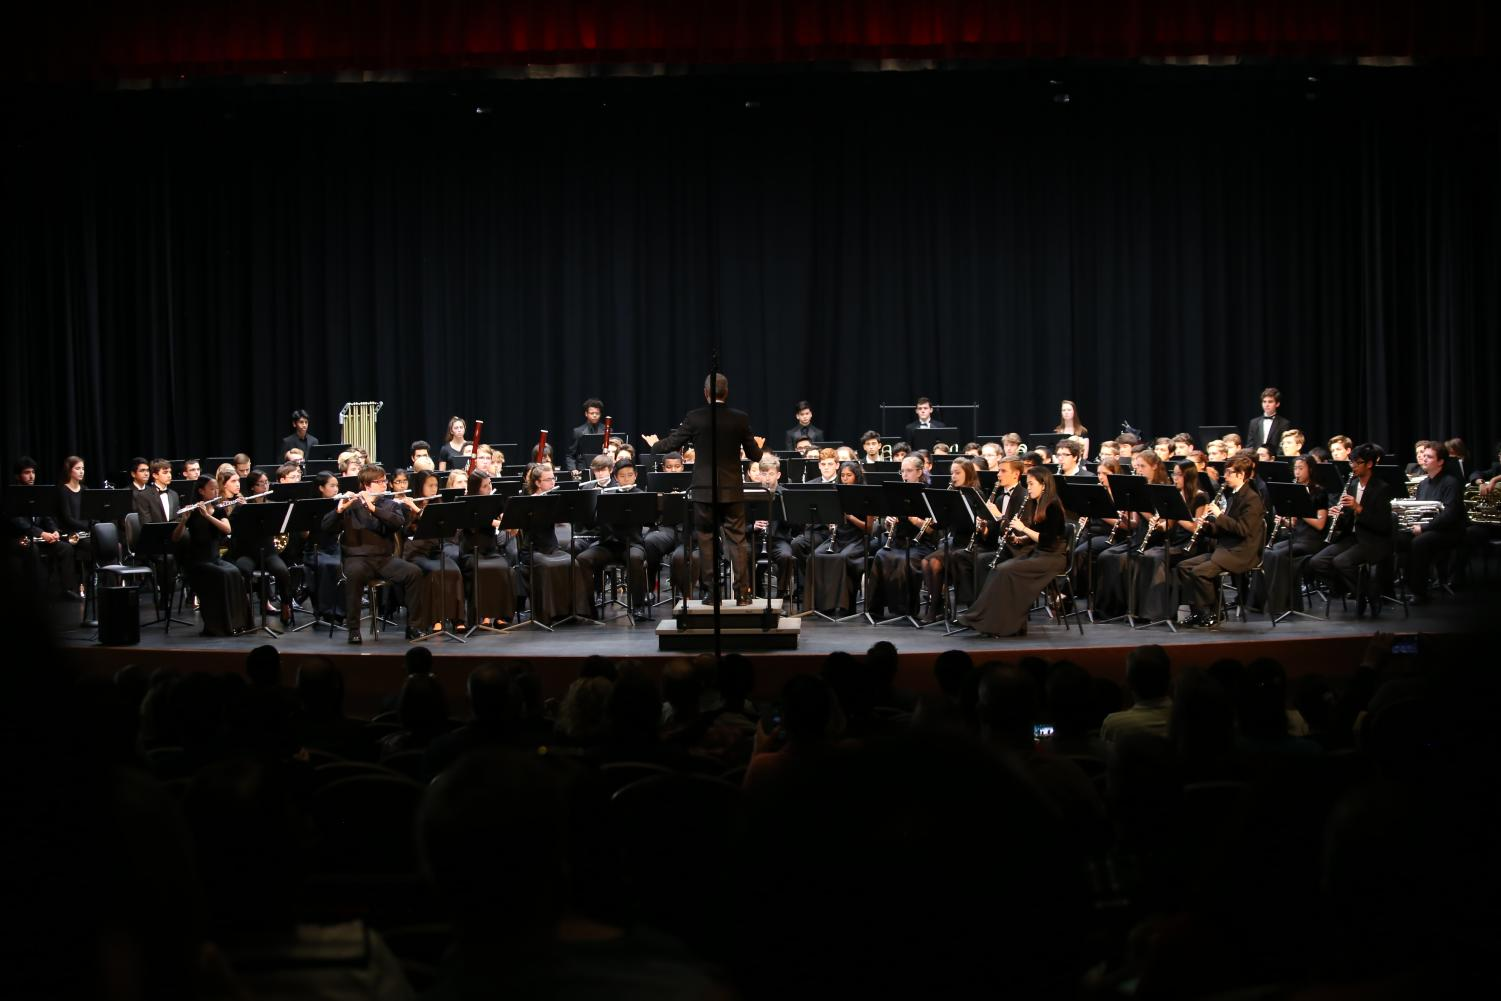 Region+26+band+students+put+on+a+concert+after+auditioning+for+band+placements.+